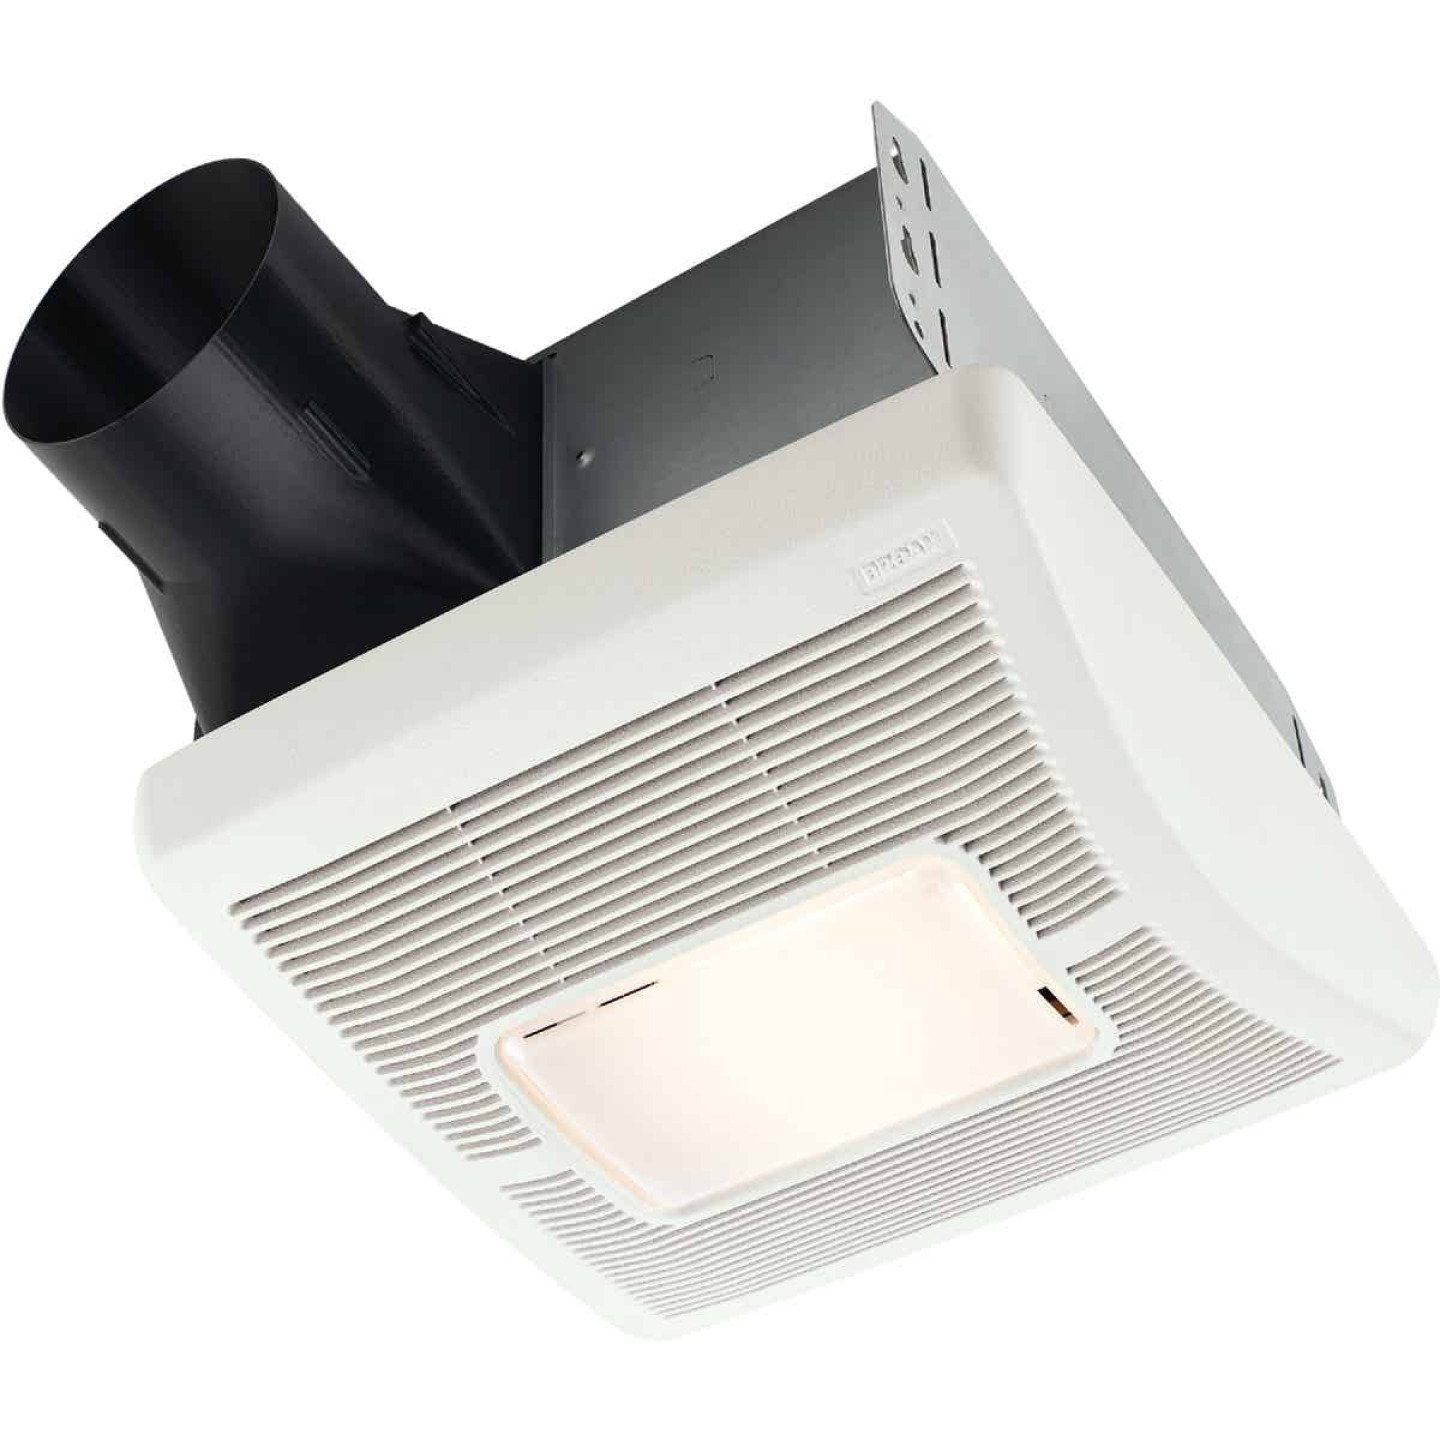 Broan 110 CFM 1.3 Sones 120V Bath Exhaust Fan with Light Image 1